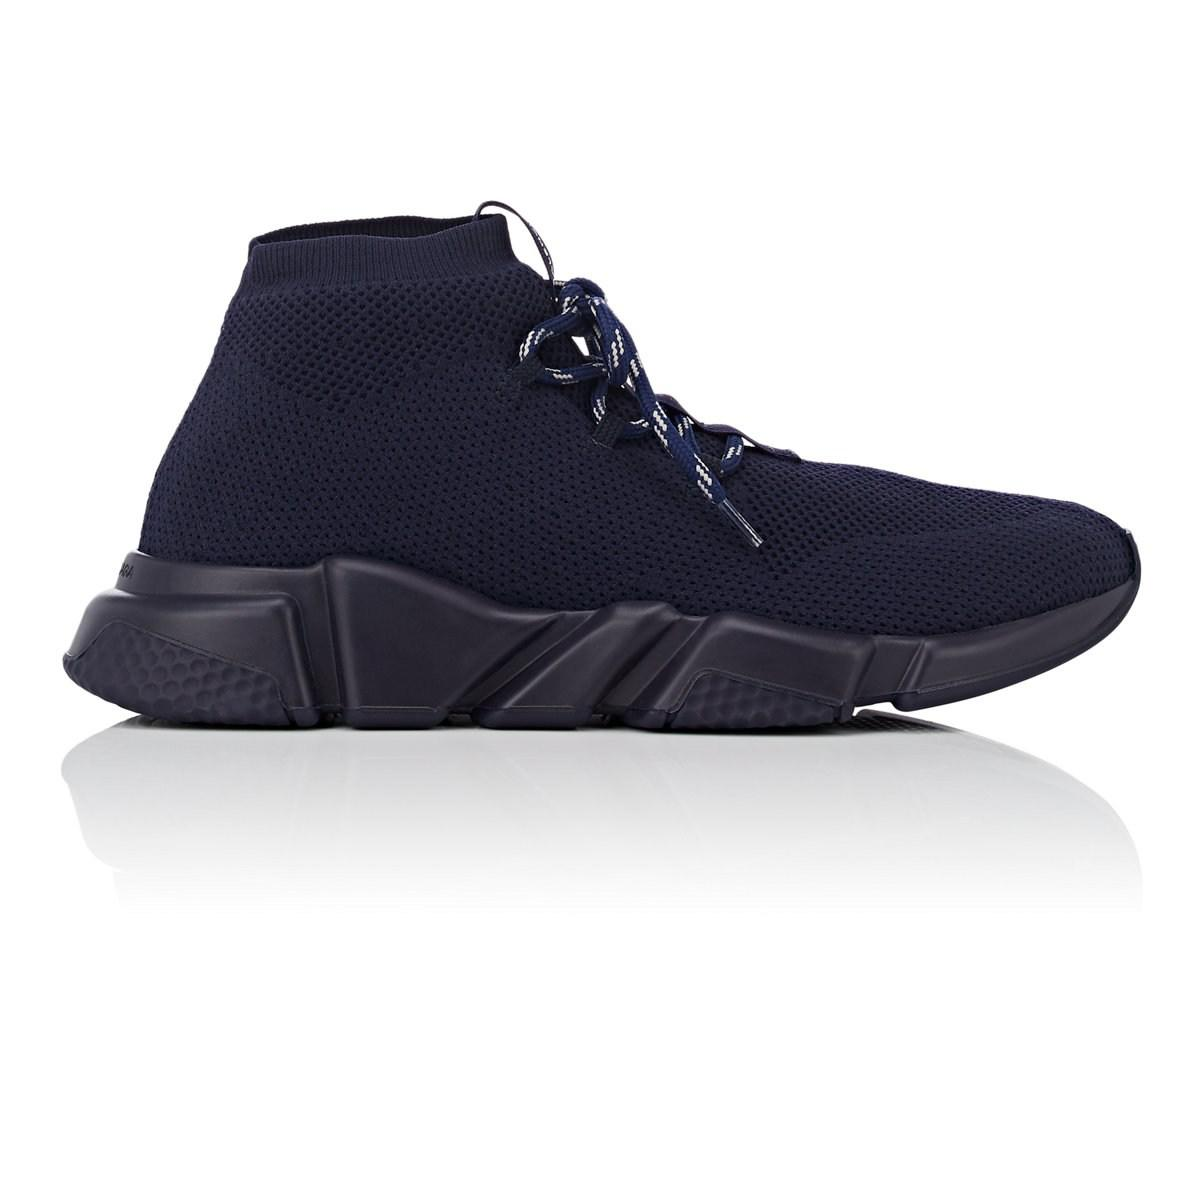 34651fb235252 Lyst - Balenciaga Speed Knit Lace-up Sneakers in Blue for Men - Save 3%